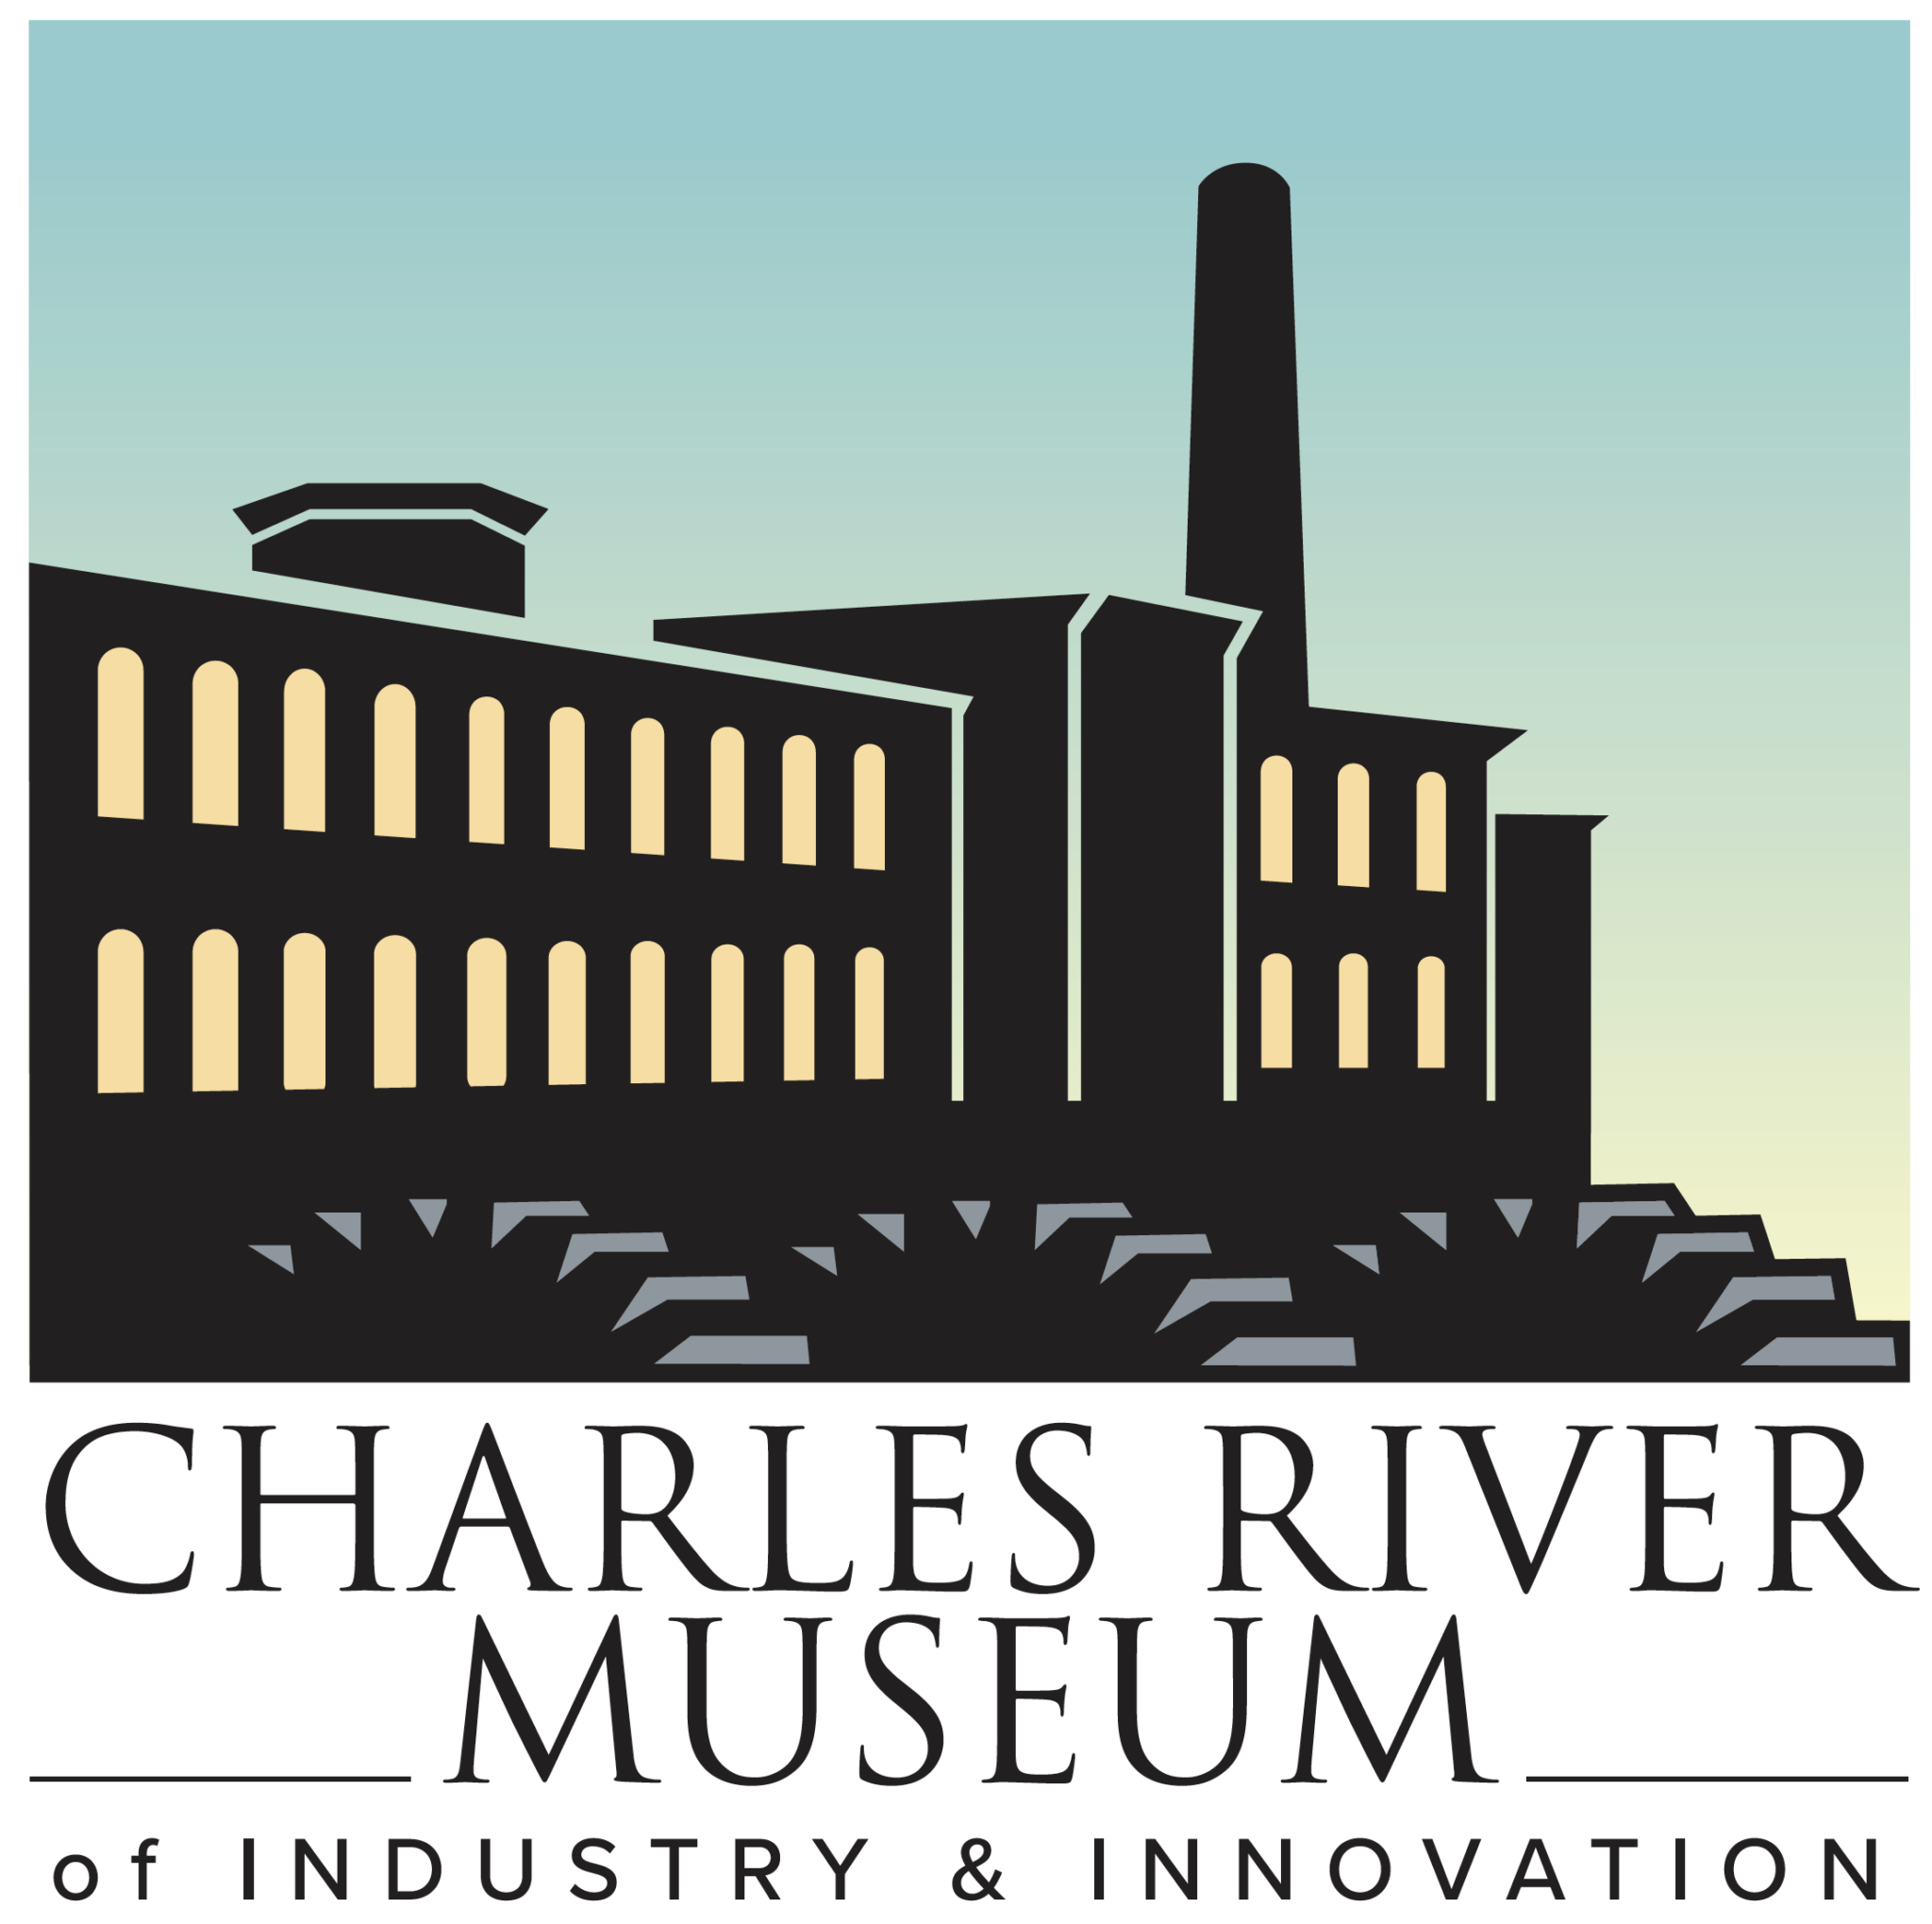 Charles River Museum of Industry and Innovation